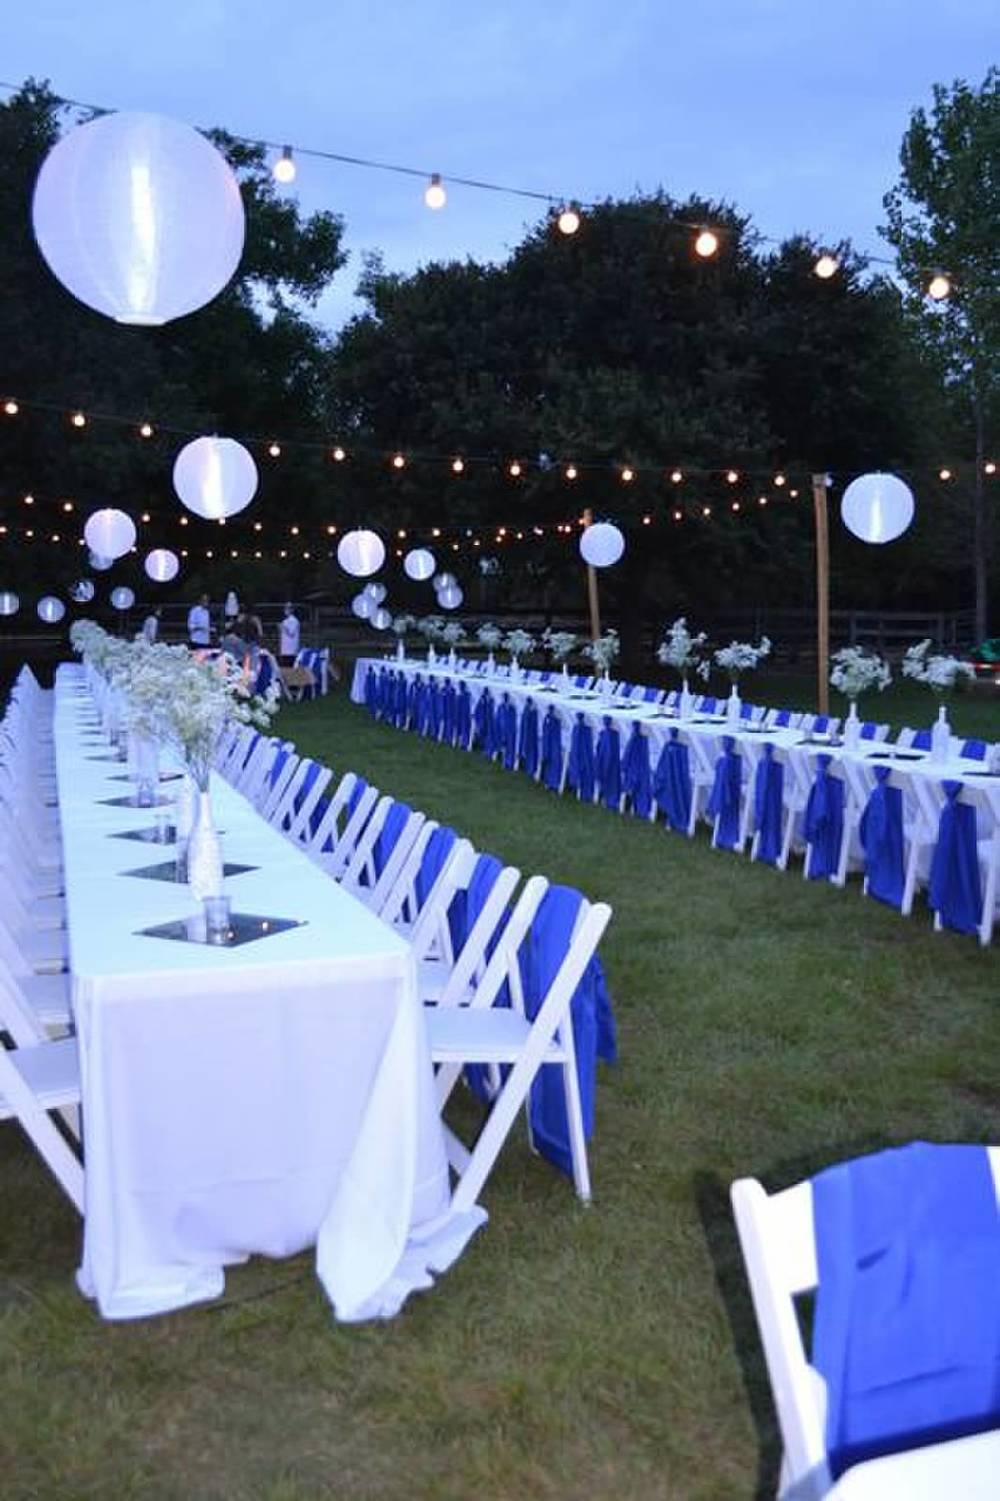 RSPV_Event_Rentals_Destin_lighting_02.jpg